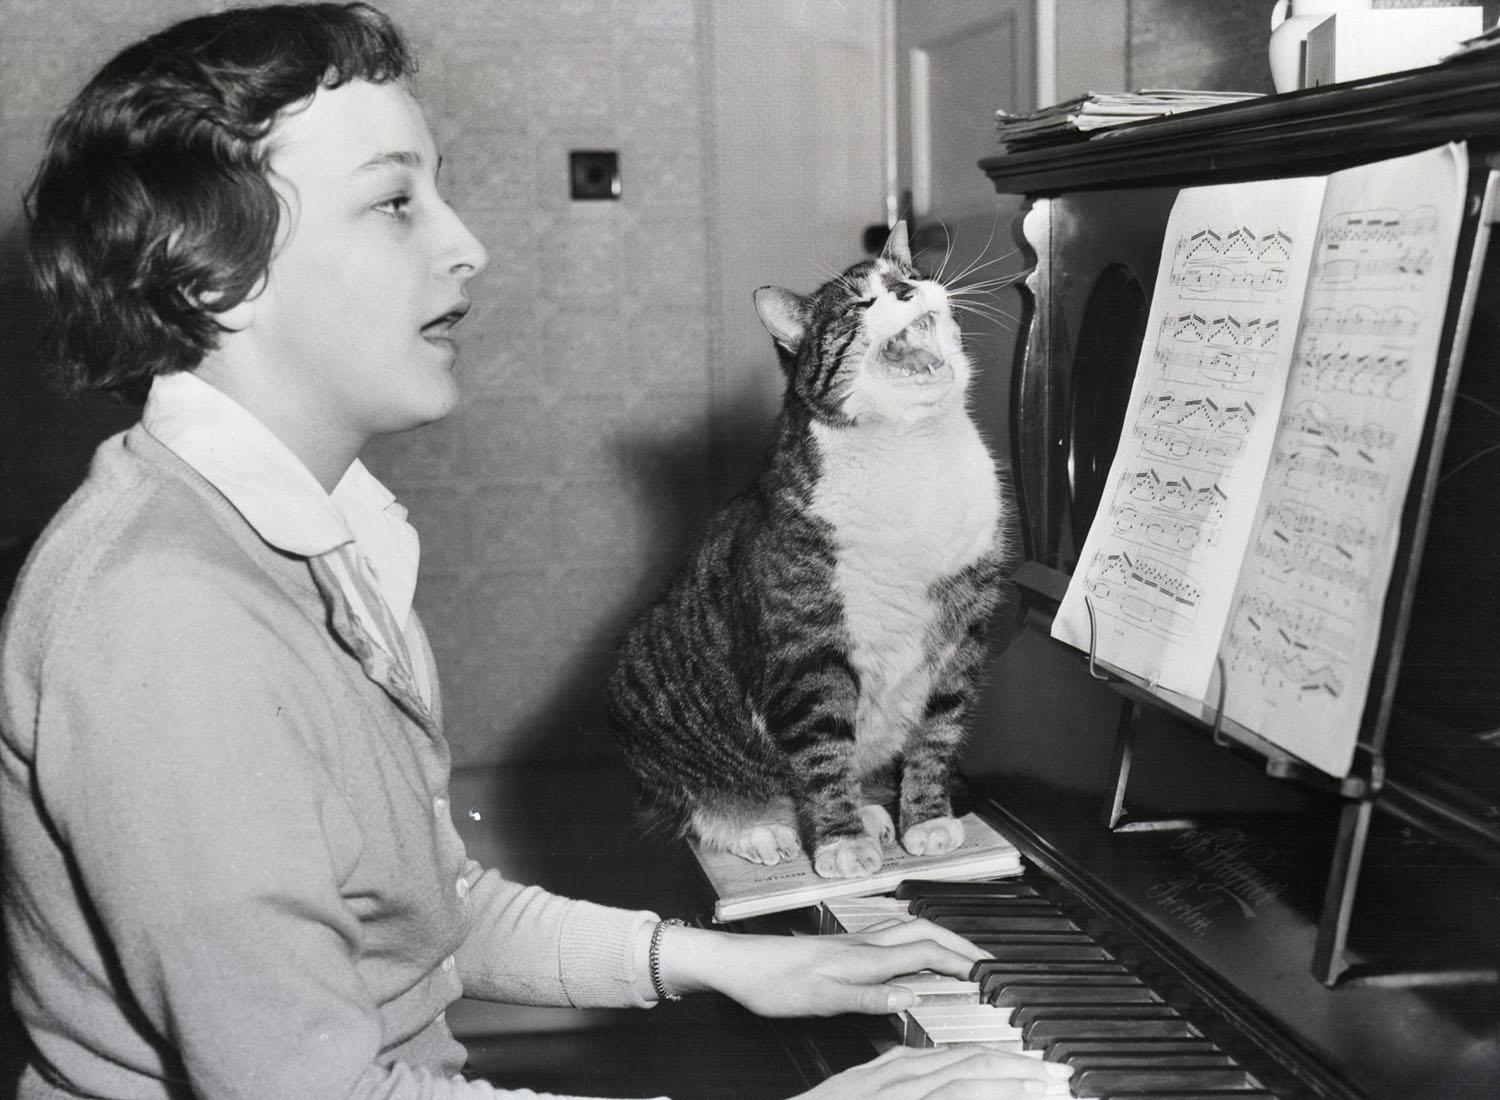 Money the Cat singing while his owner plays the piano. March 23, 1959.jpg